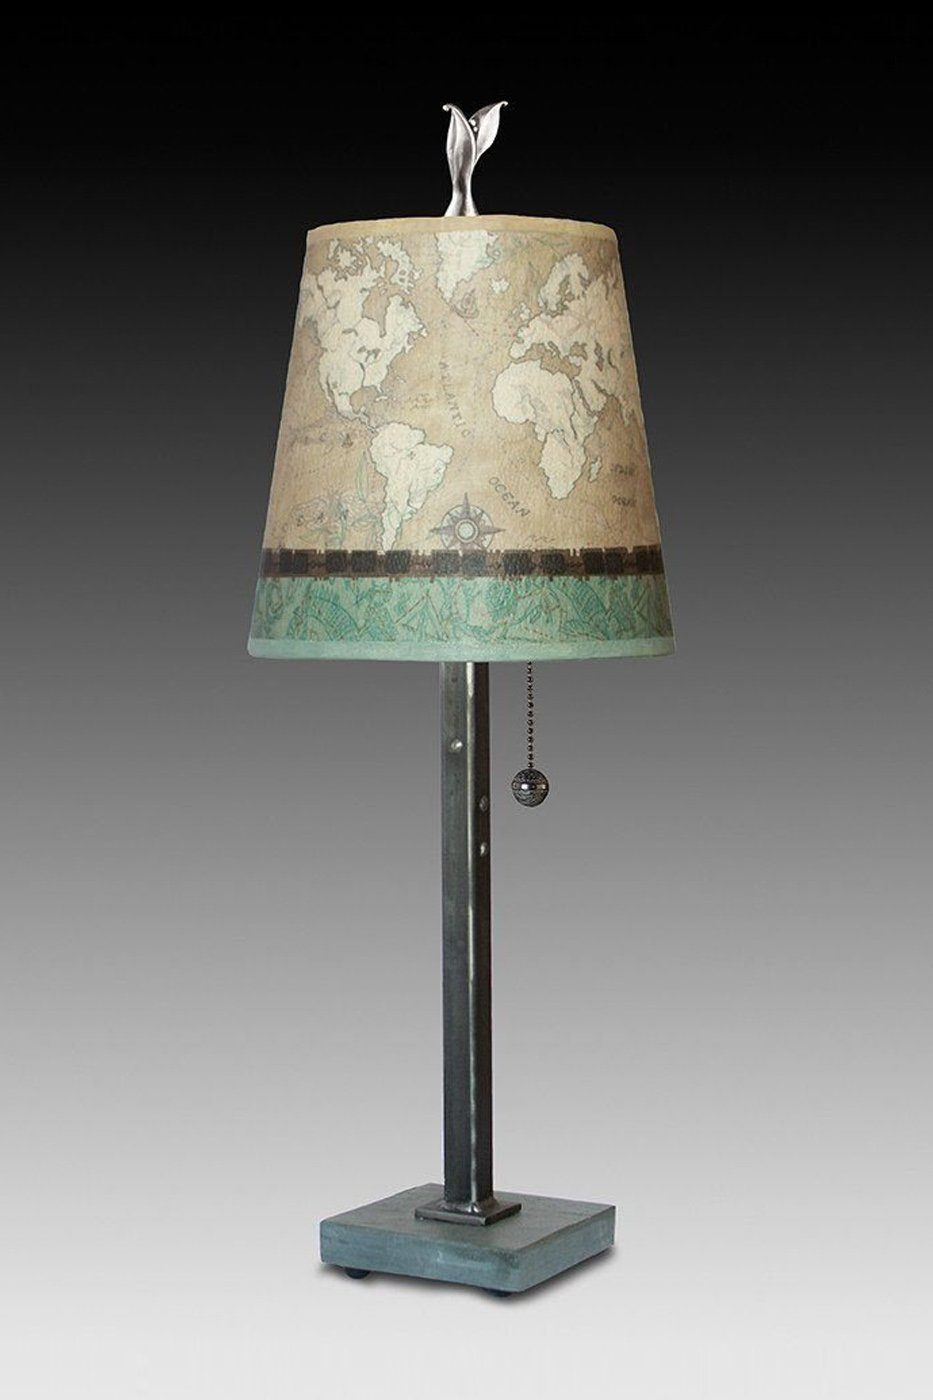 Steel Table Lamp on Italian Marble Base with Small Drum Shade in Sand Map